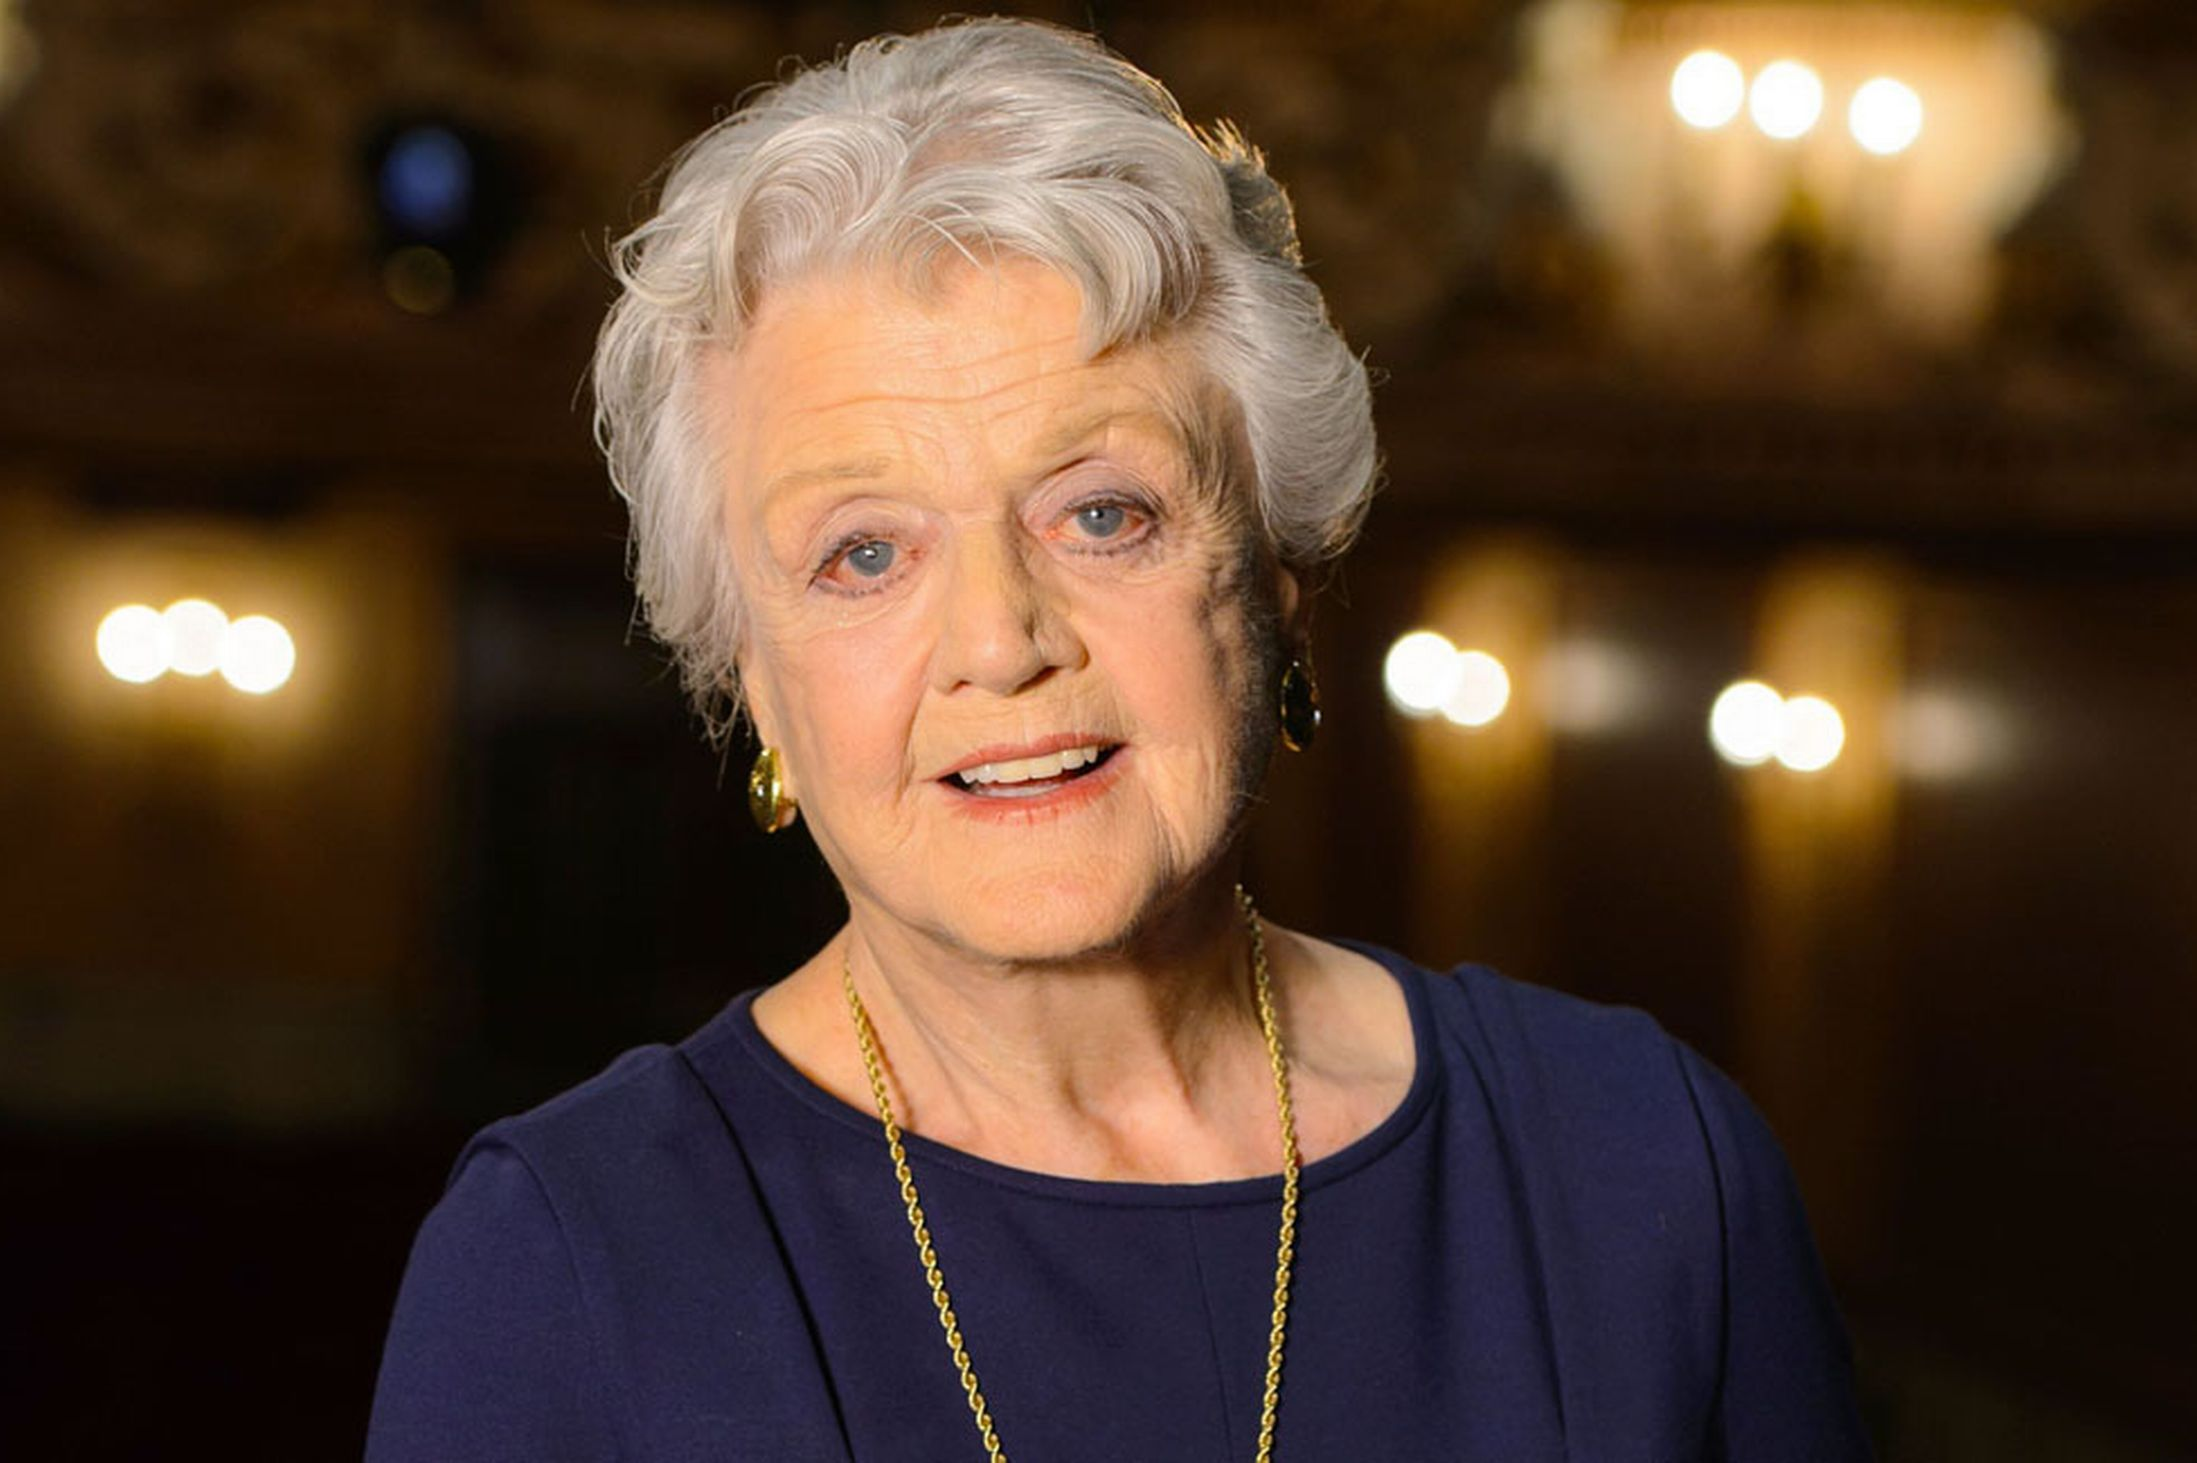 angela lansbury game of thronesangela lansbury 2017, angela lansbury young, angela lansbury gif, angela lansbury - beauty and the beast, angela lansbury car, angela lansbury nanny mcphee, angela lansbury fan mail, angela lansbury game of thrones, angela lansbury address, angela lansbury movies, angela lansbury beaty and the beast, angela lansbury interview, angela lansbury mrs lovett, angela lansbury youtube, angela lansbury astrotheme, angela lansbury new york, angela lansbury workout video, angela lansbury 2016, angela lansbury beauty and the beast перевод, angela lansbury twitter